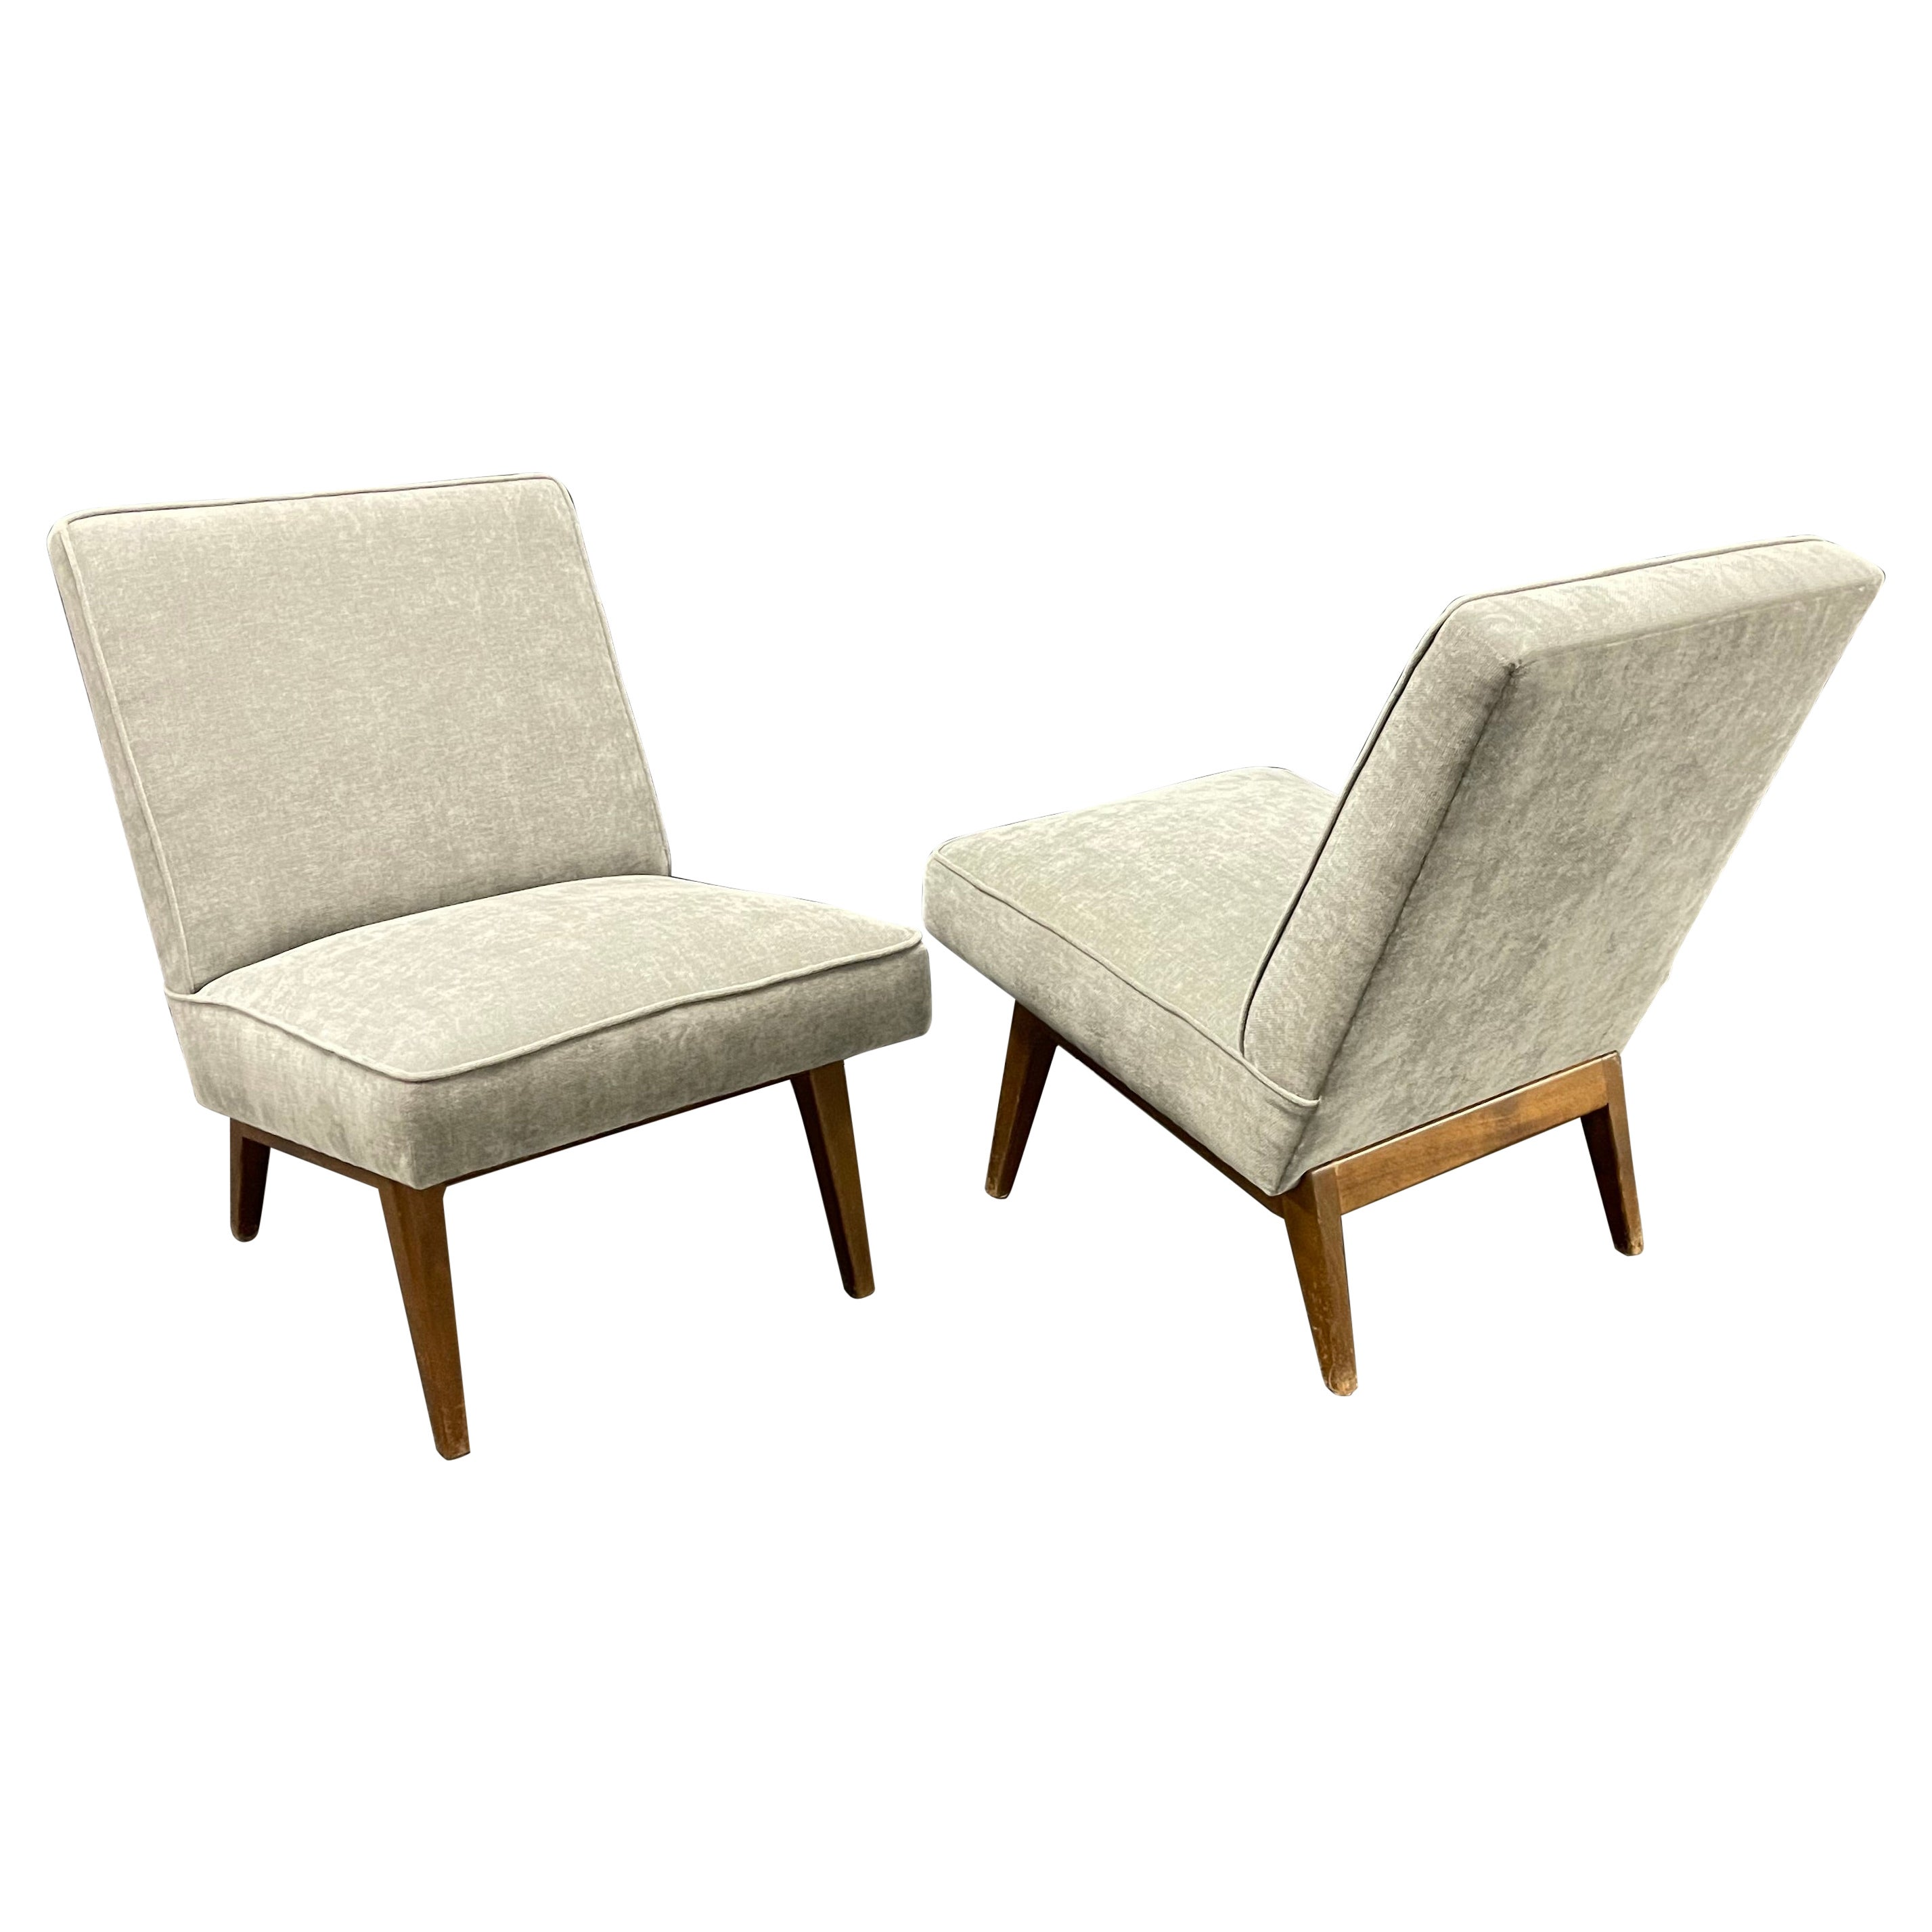 Rare Pair of Jens Risom Lounge Chairs